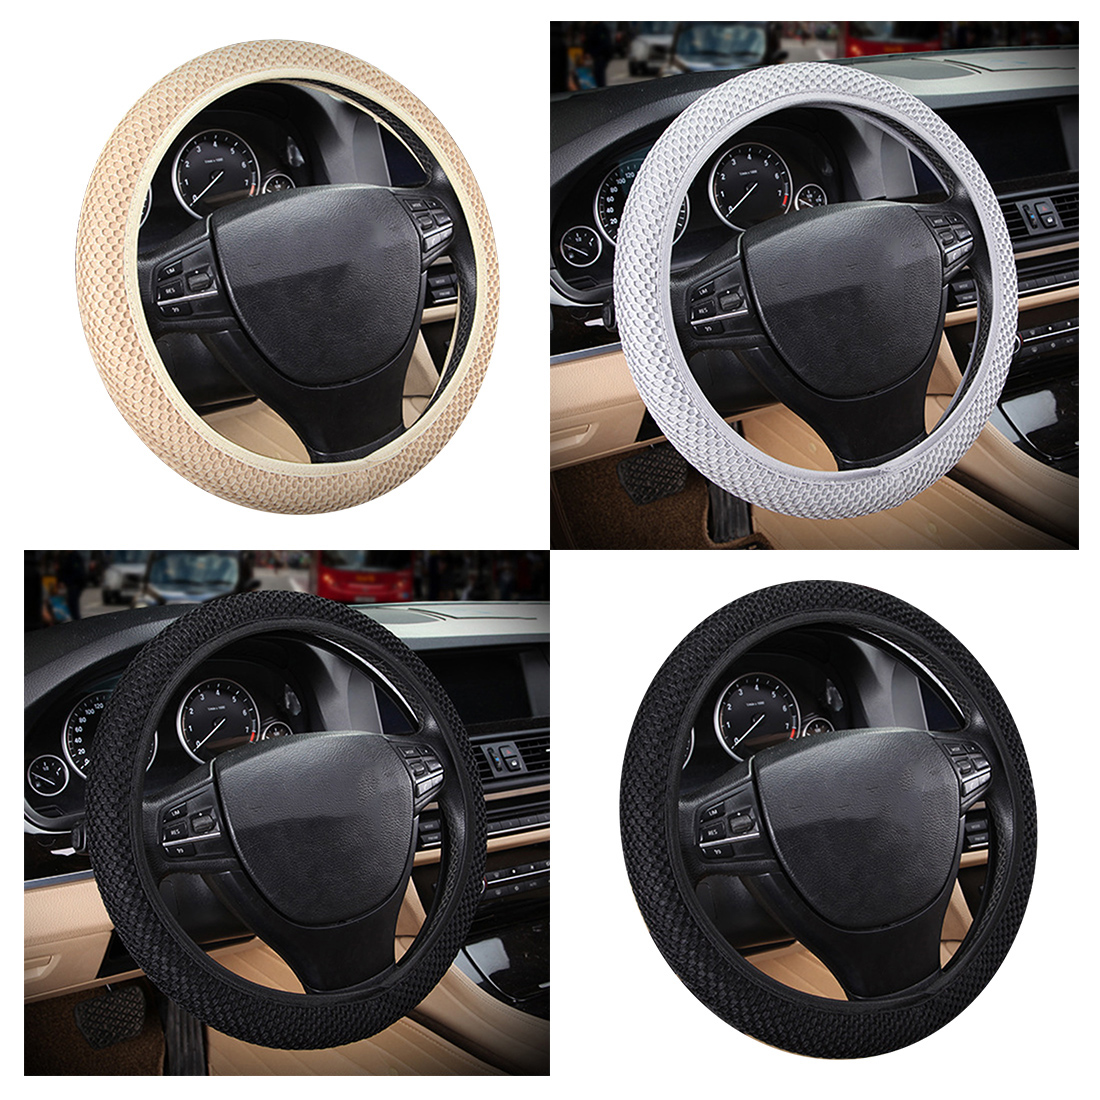 Dewtreetali Universal Car Steering Wheel Cover Breathable Sandwich Fabric Steering Wheel Protector Four Seasons Car Styling dewtreetali car front seat cover sandwich four seasons universal seat protector cushion cover fit most auto car suv car styling